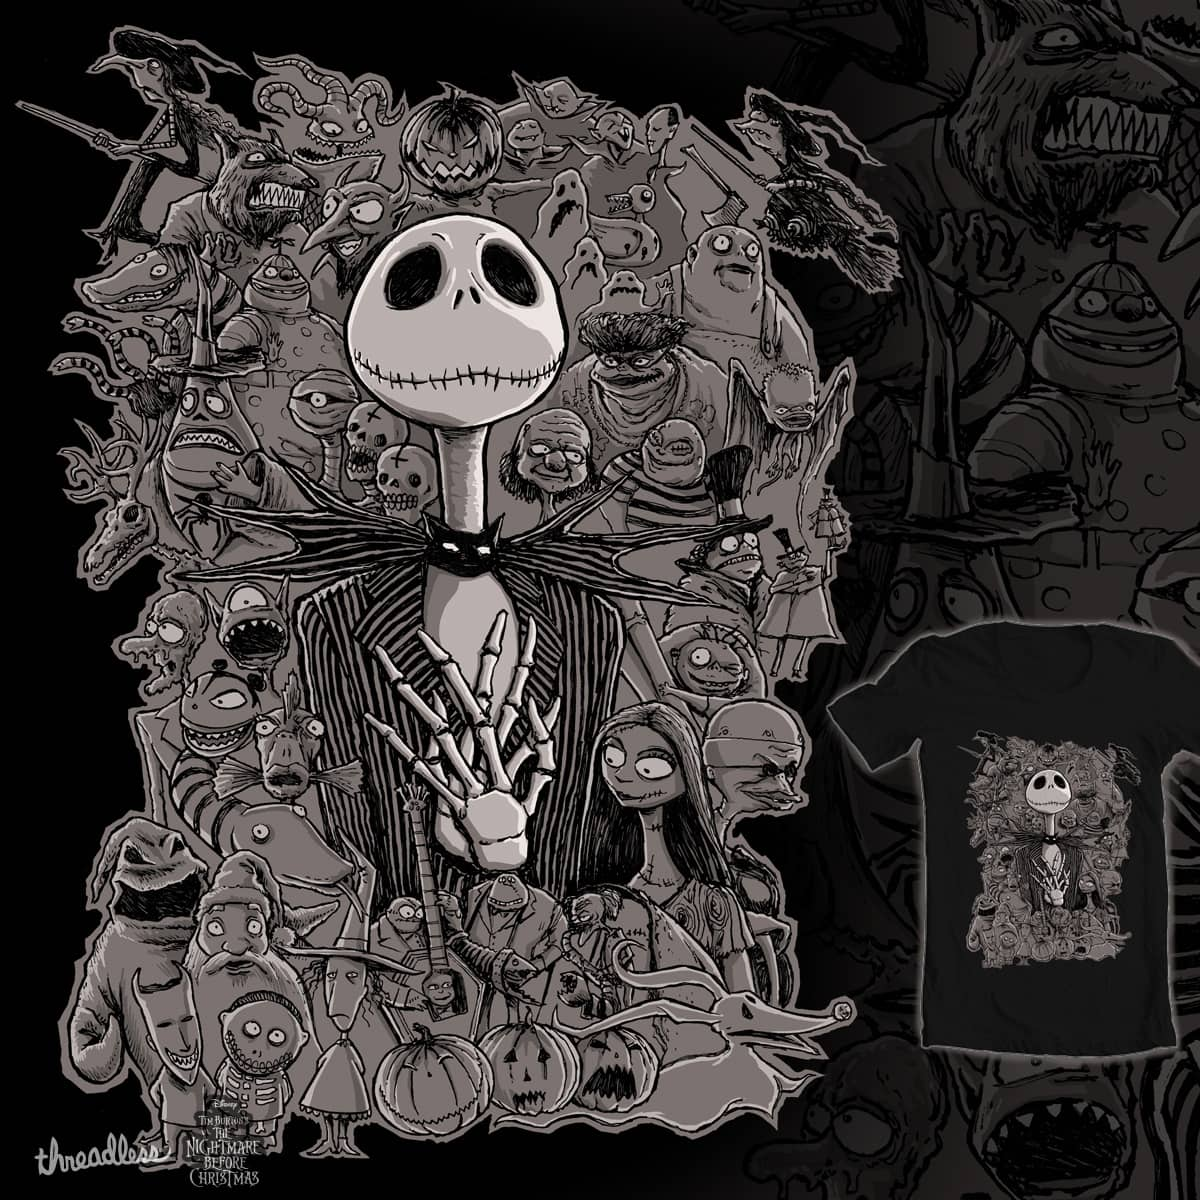 Score This is Halloween by Moutchy on Threadless